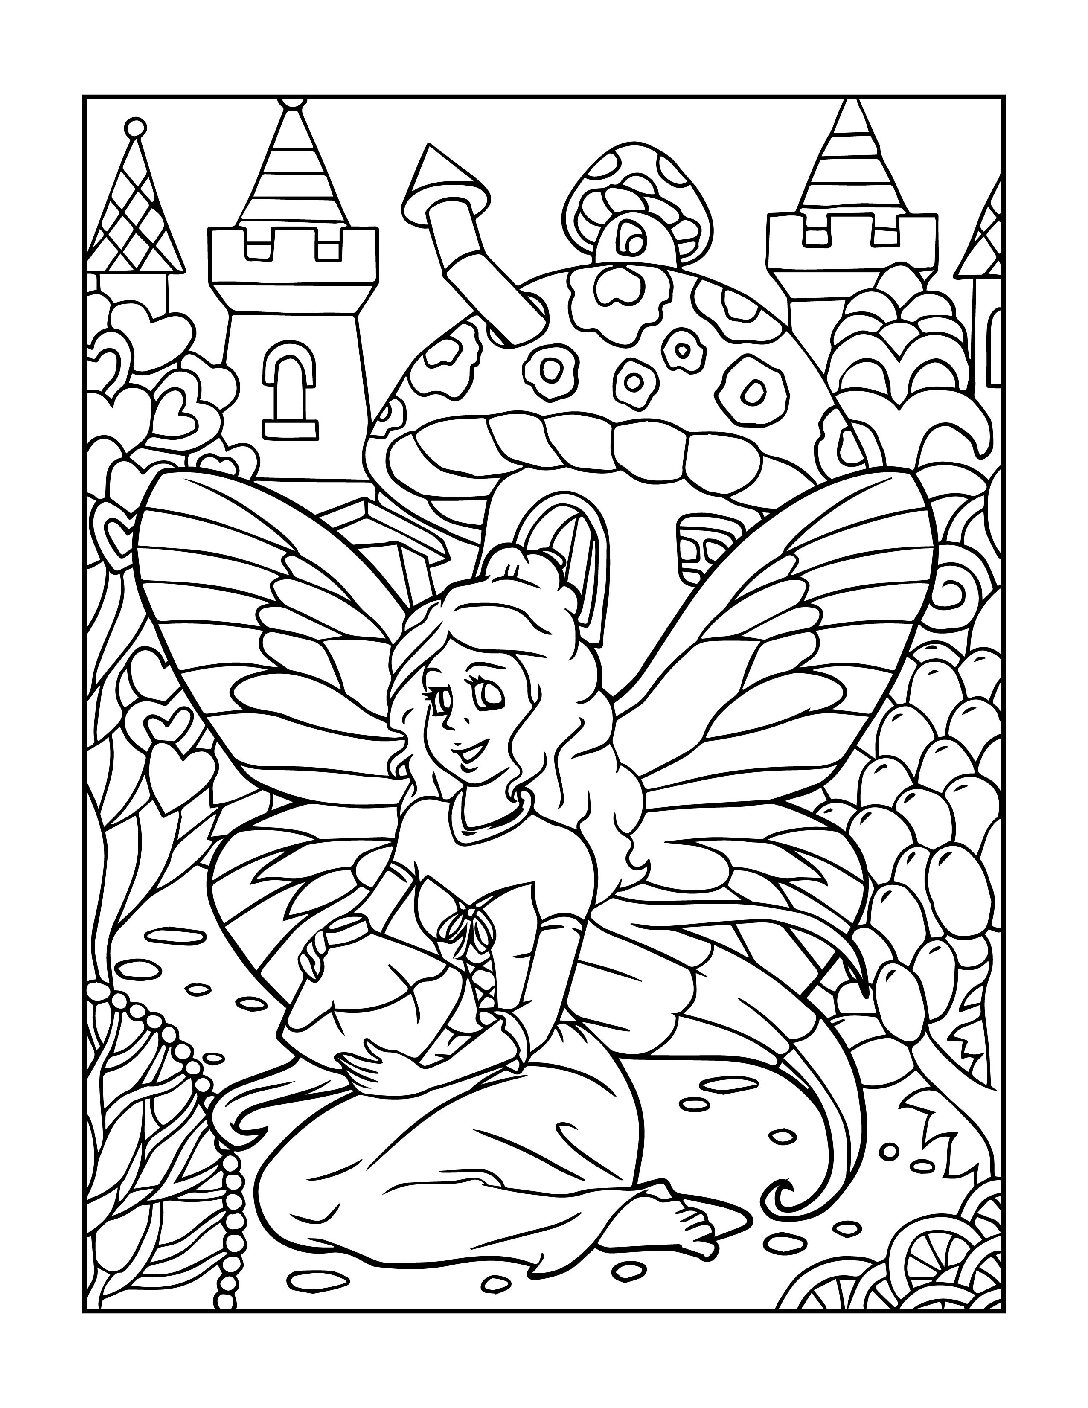 Coloring-Pages-Fairies-14-01-pdf Free Printable Fairy Colouring Pages